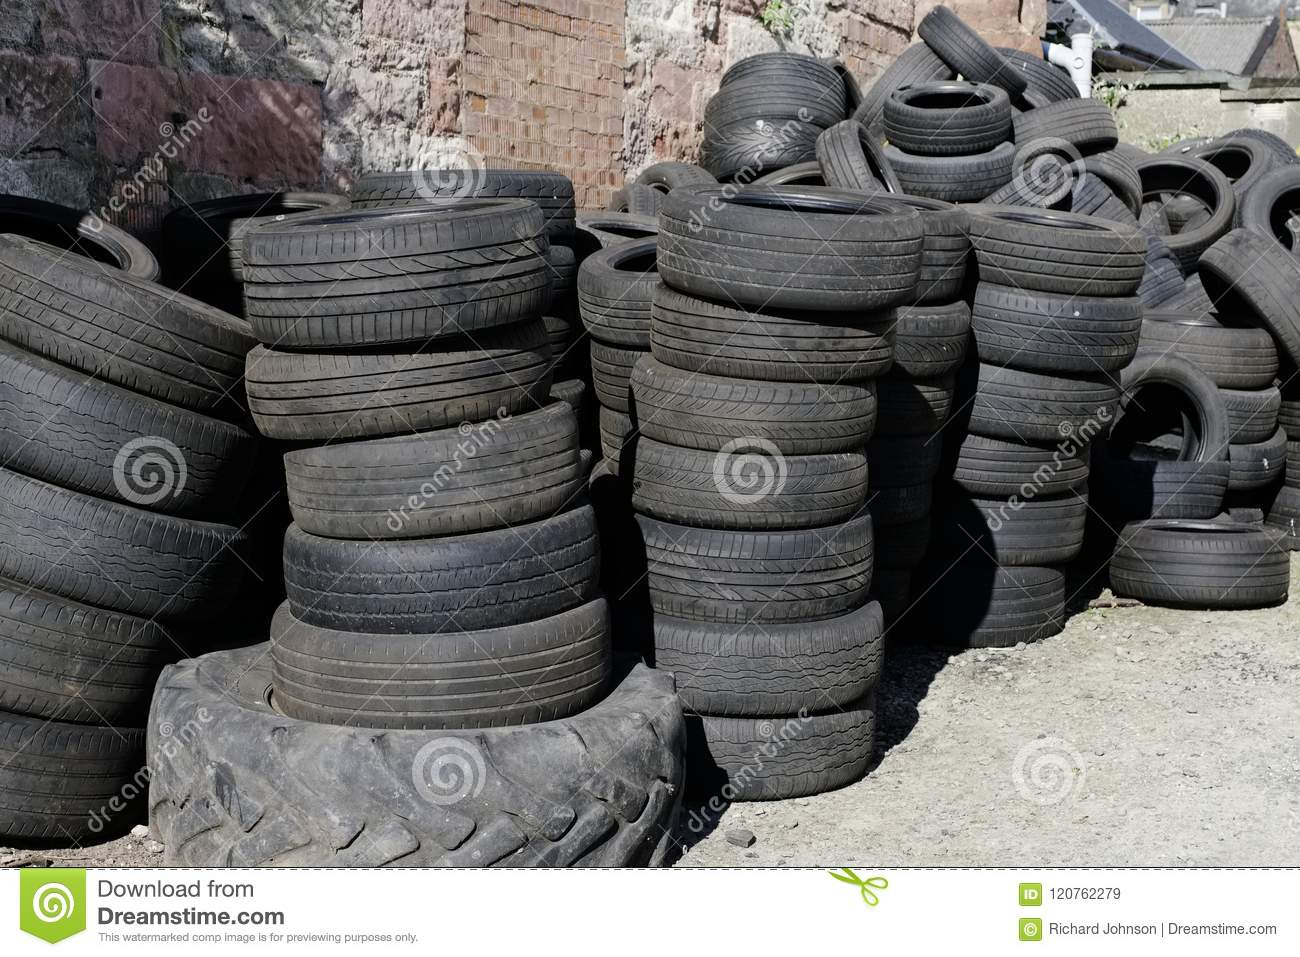 Car Tyres Stacked Recycling Compound Environment Ole Used Rubber